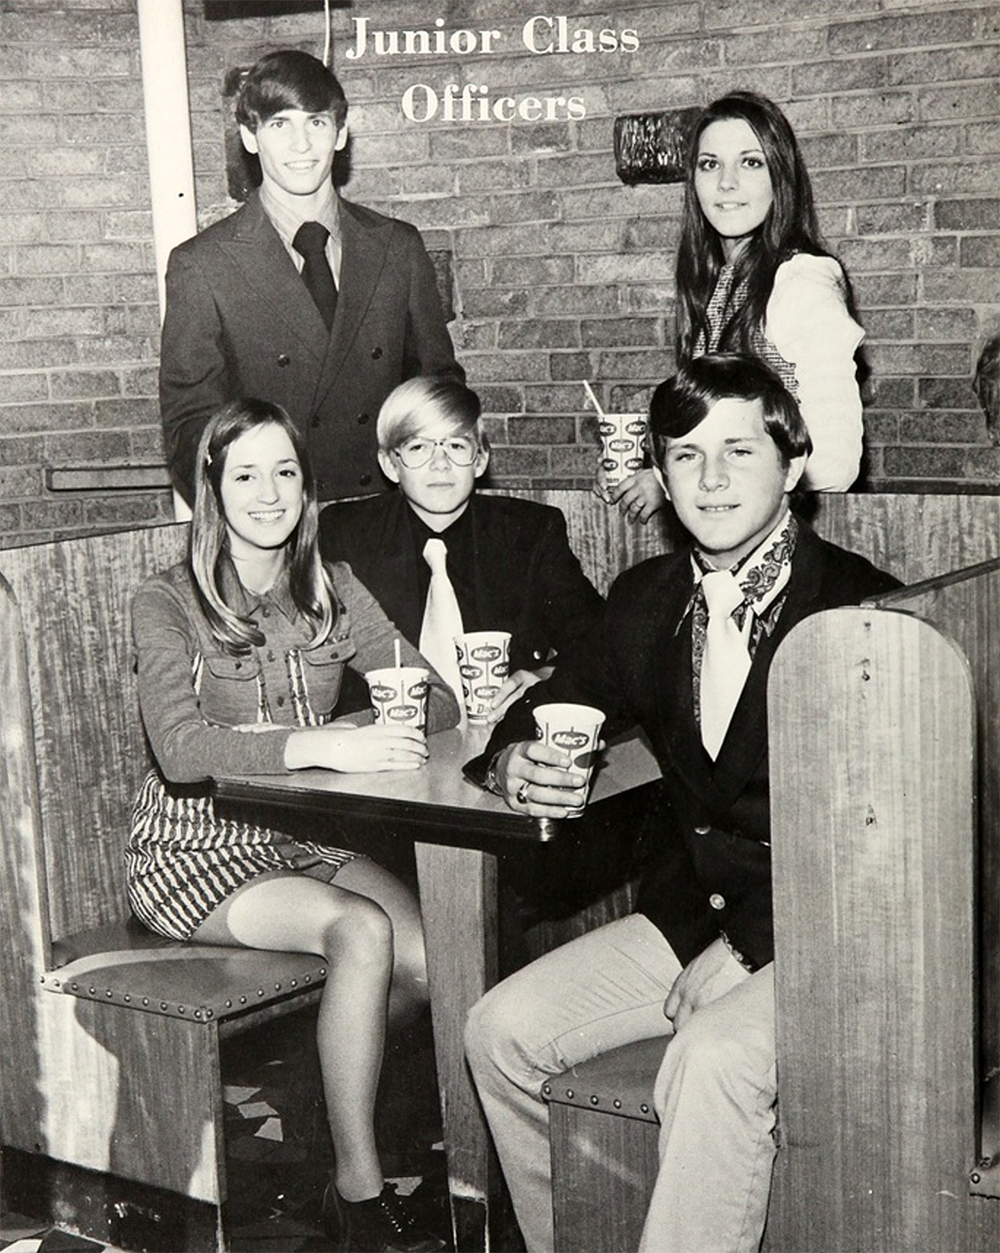 junior class officers 1970s yearbook